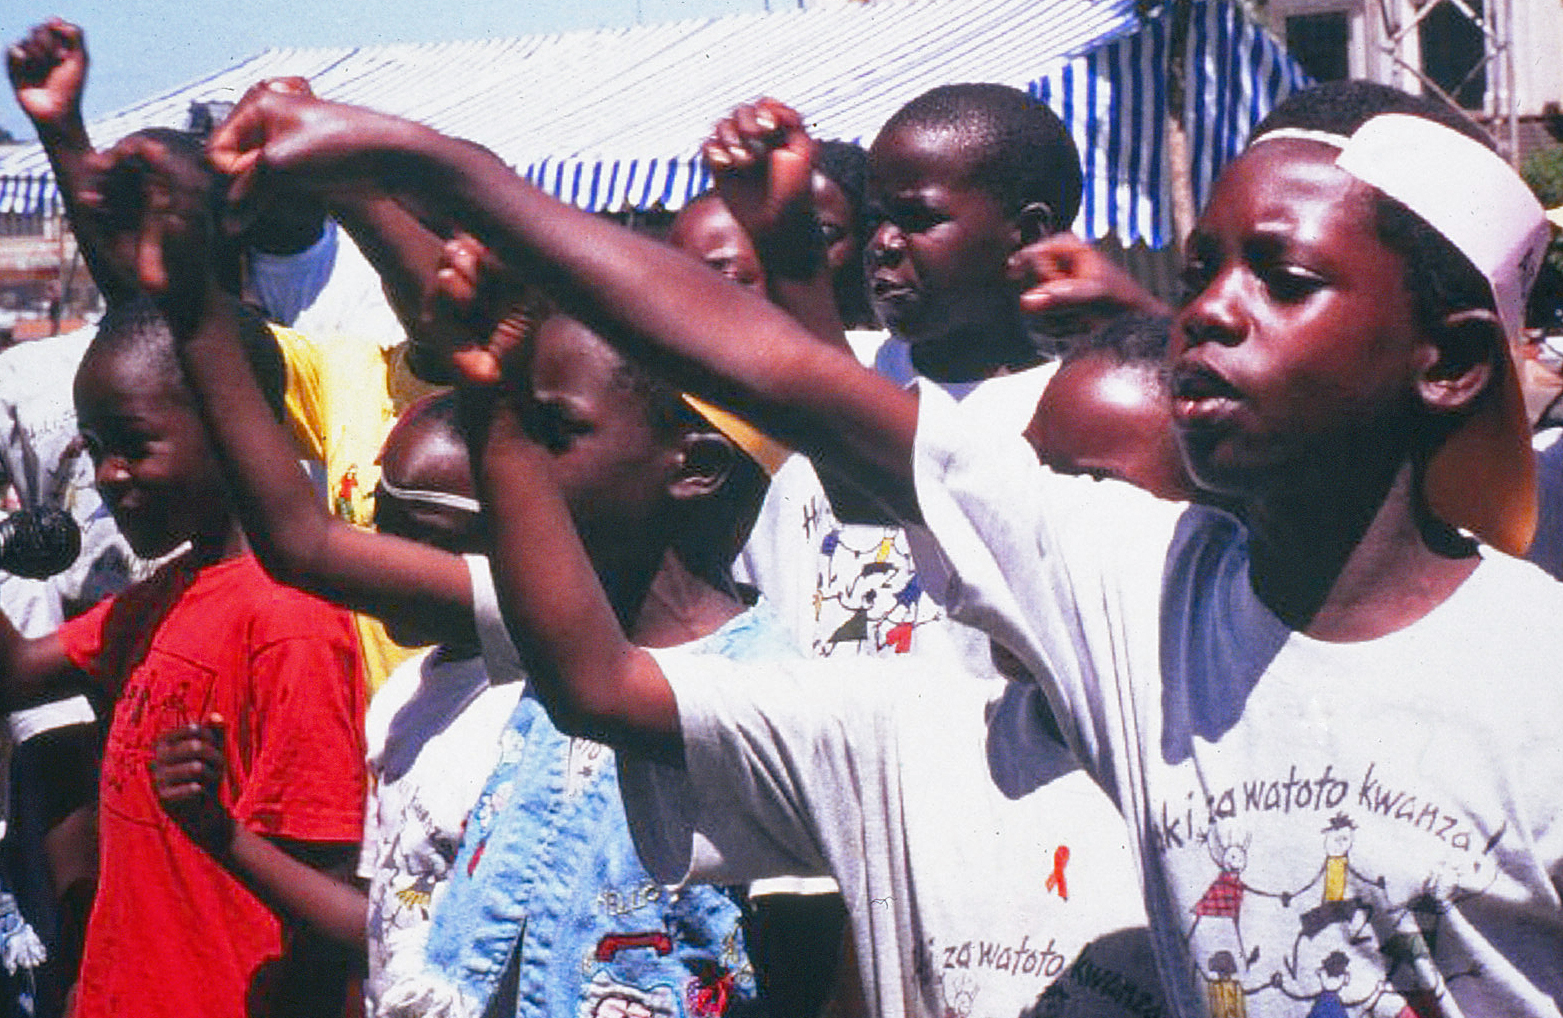 Kids-in-Kampala-yell-at-parents-to-stop-getting-HIV--2000--LG-(deleted-4db207b8-914822-4547c04a).jpg